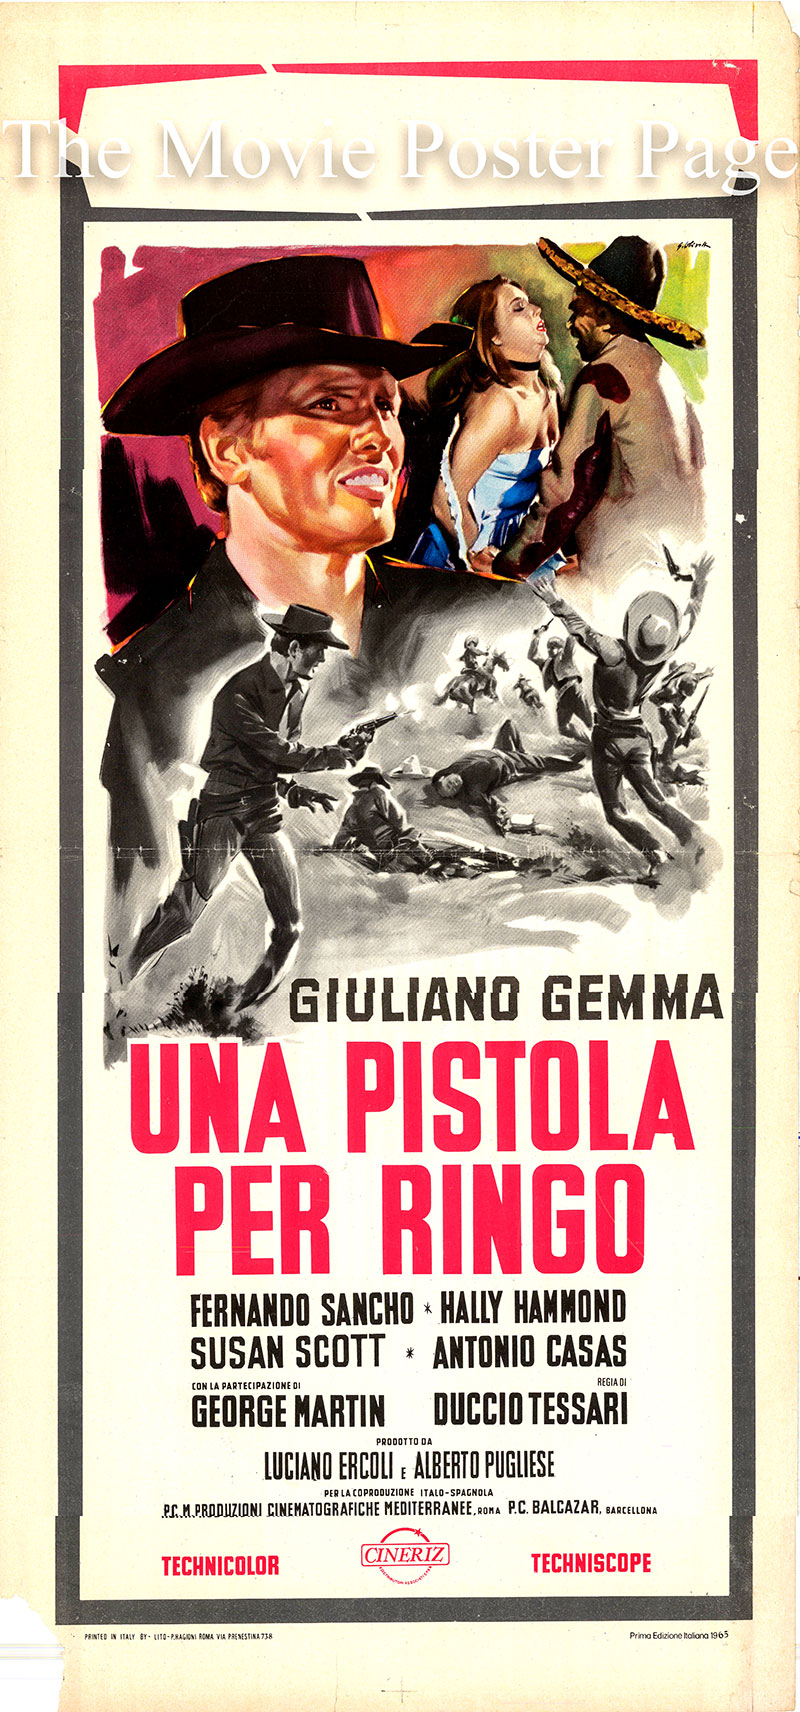 Pictured is an Italian promotional poster for the 1965 Duccio Tessari film A Pistol for Ringo starring Giuliano Gemma as Ringo.